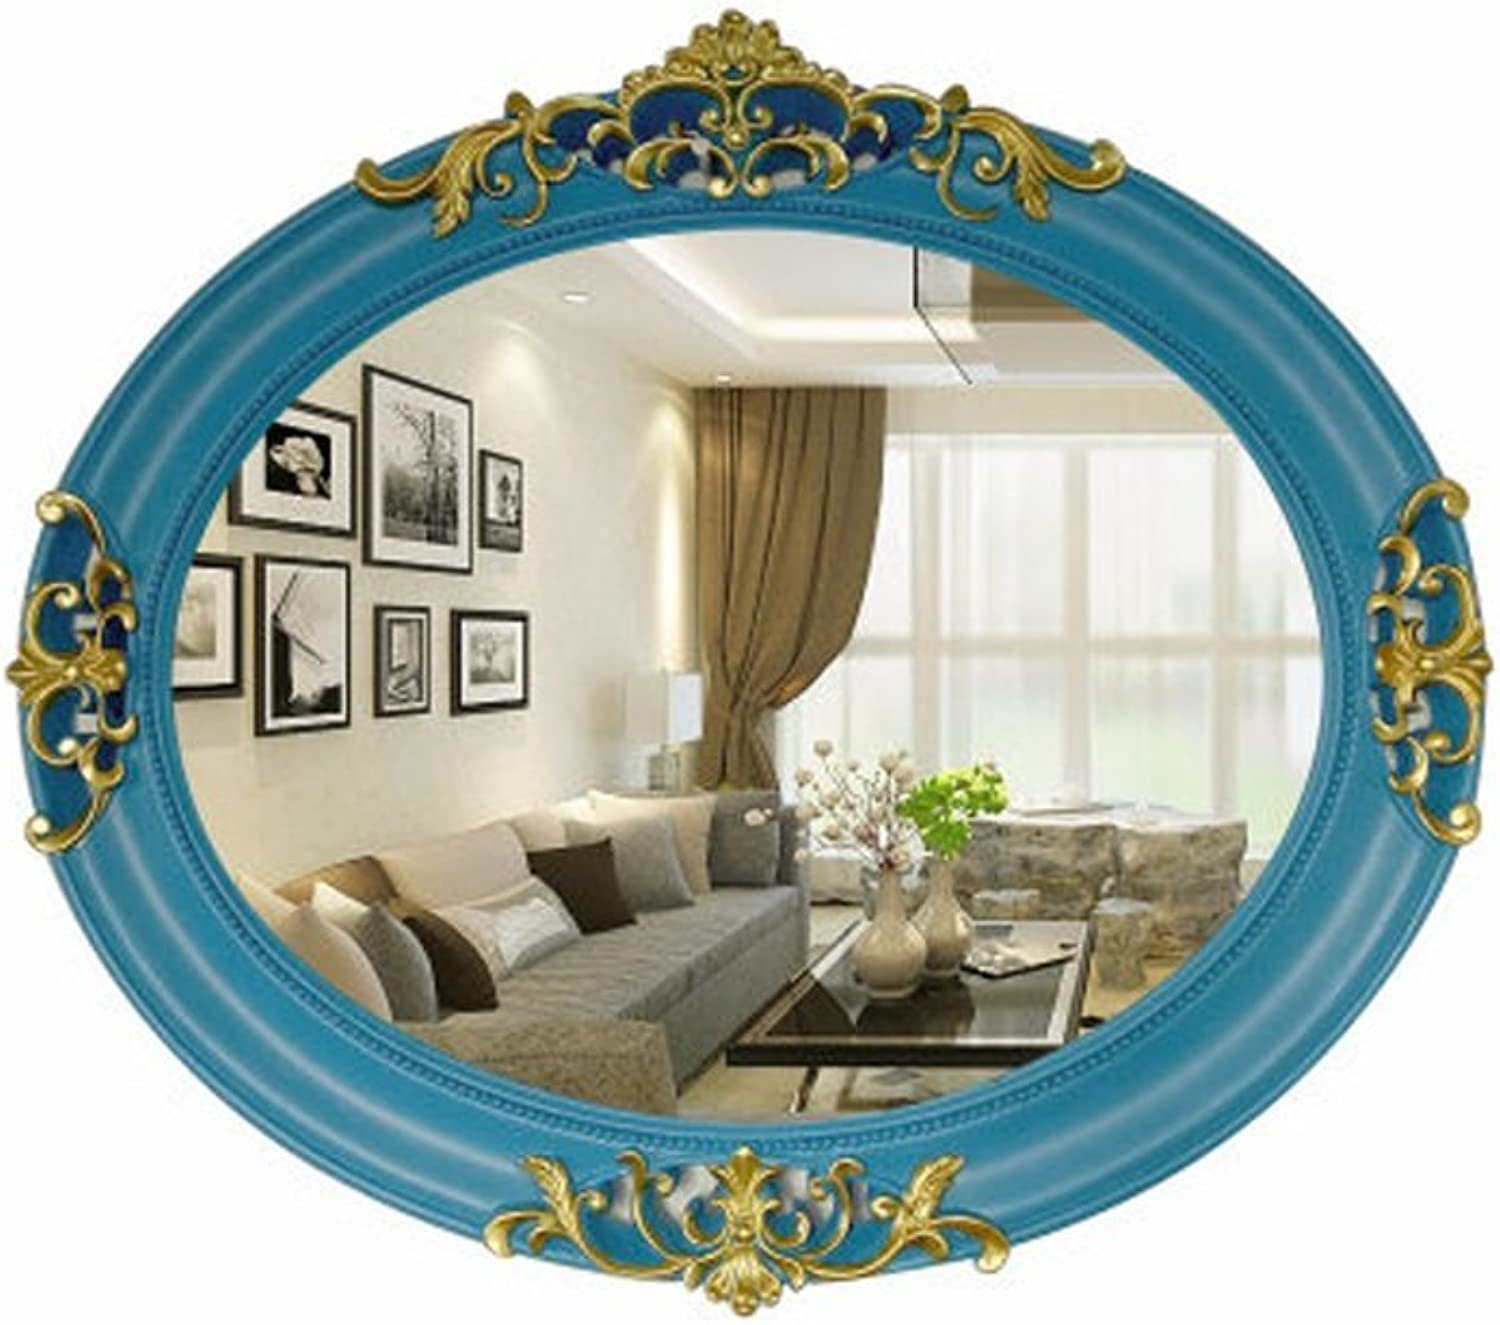 LXFMD European Mediterranean Style Oval Small Mirror Beauty Mirror Wall Hanging Decorative Mirror Bathroom Mirror Bathroom Mirror (color   Black gold)